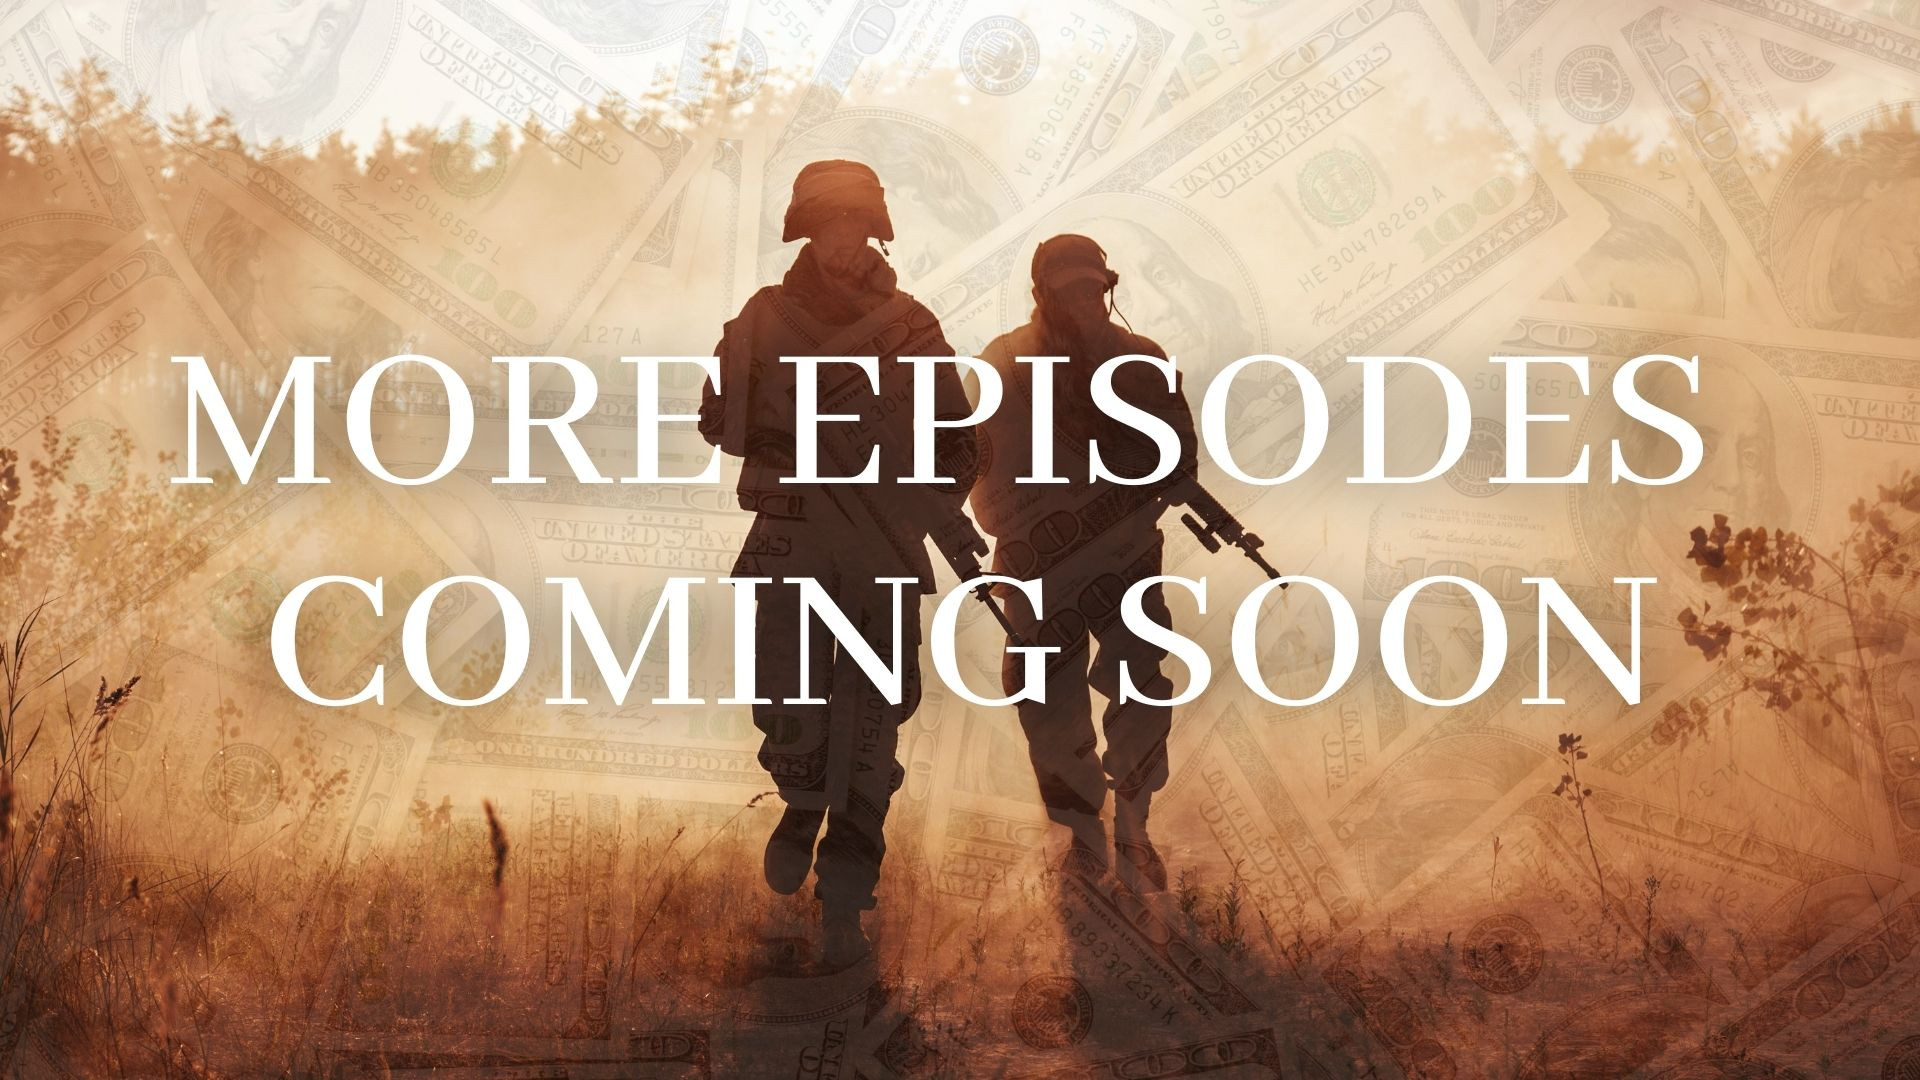 MORE EPISODES COMING SOON 4.jpg